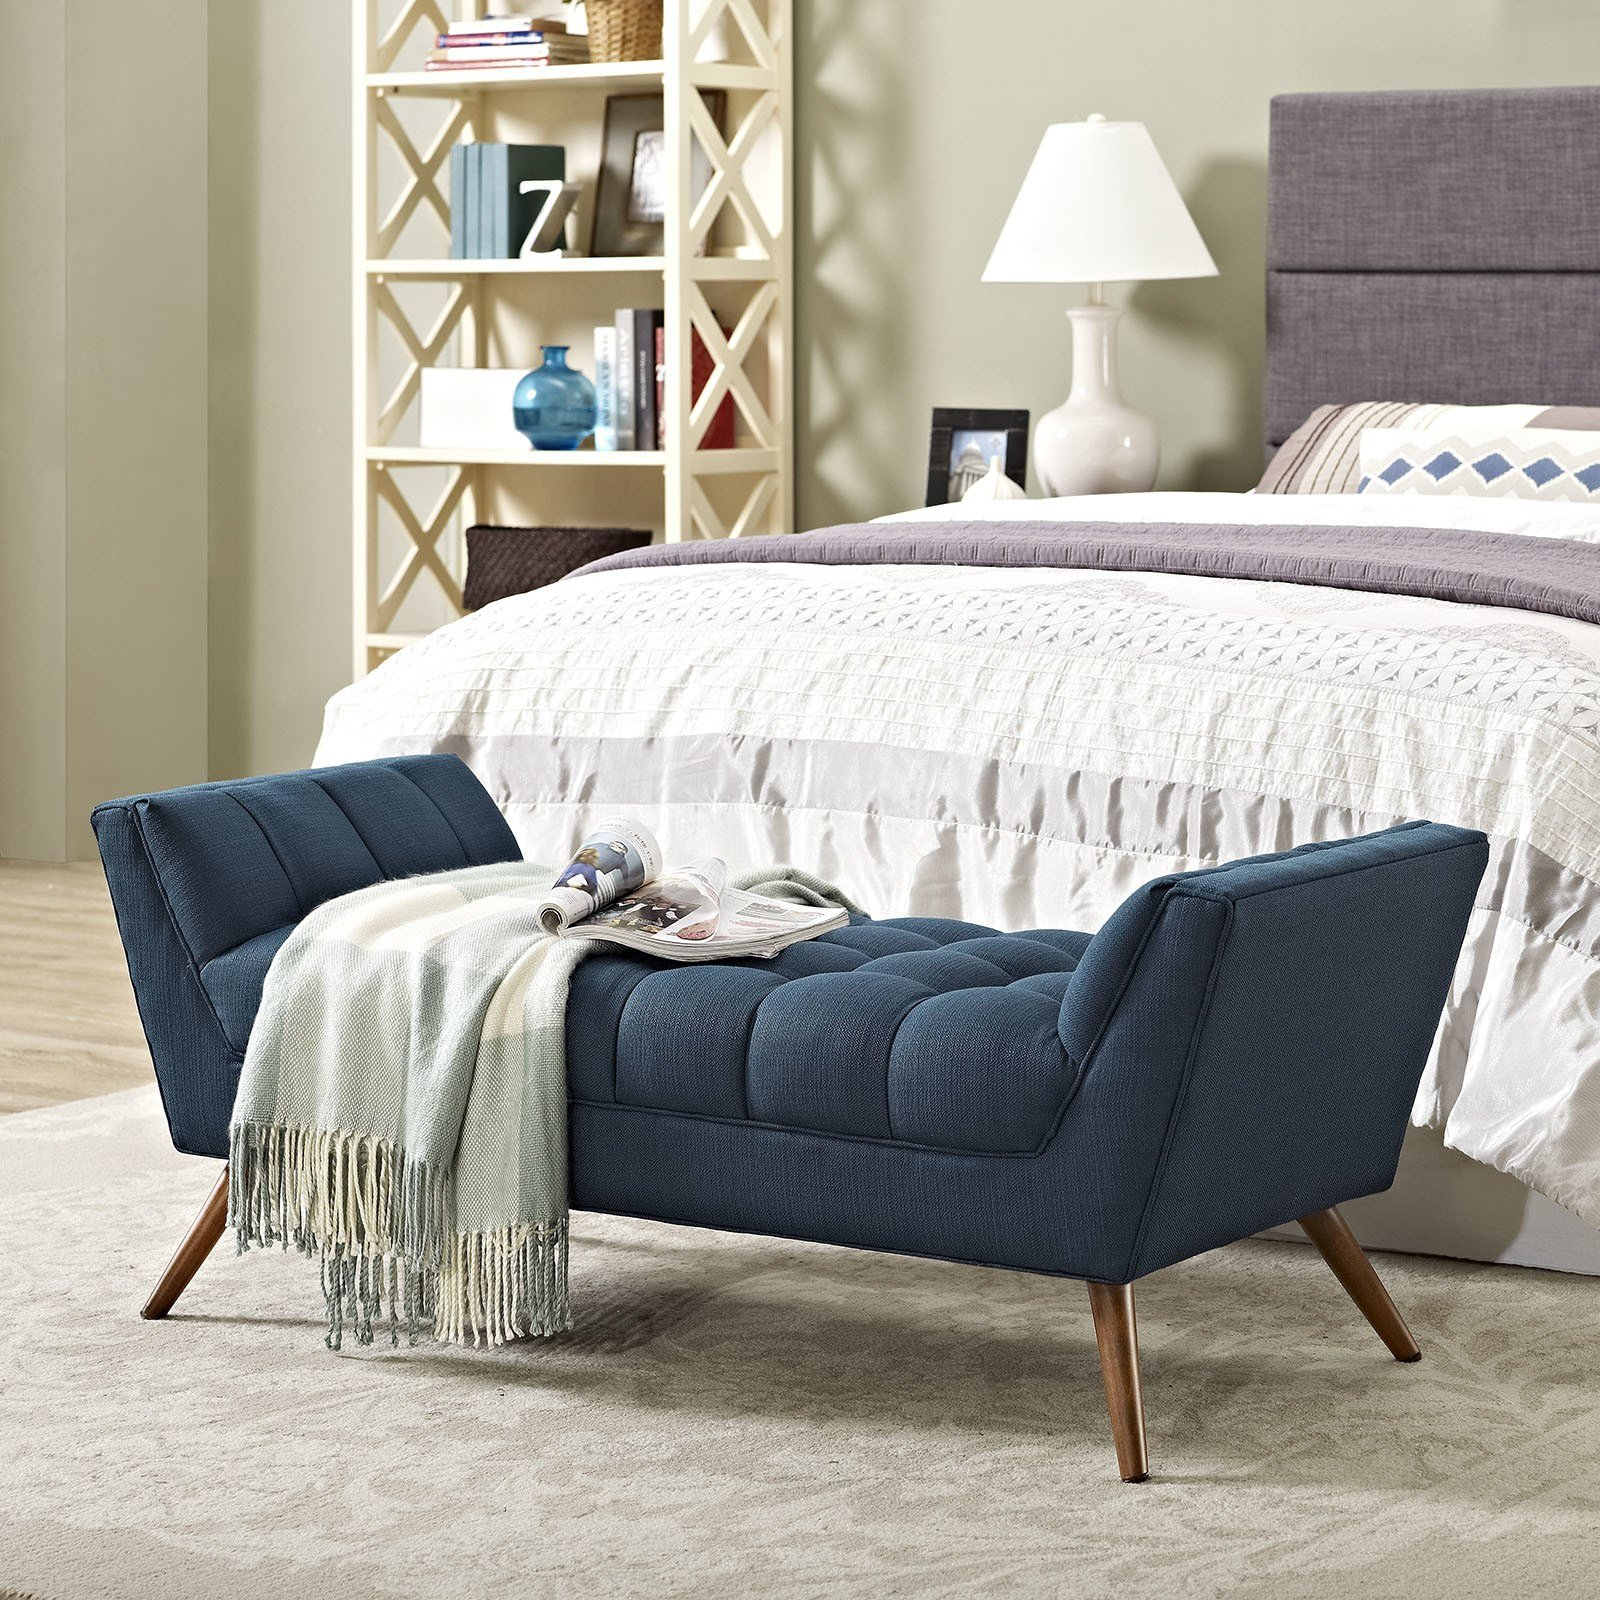 Best Response Upholstered Bedroom Bench Wayfair With Pictures